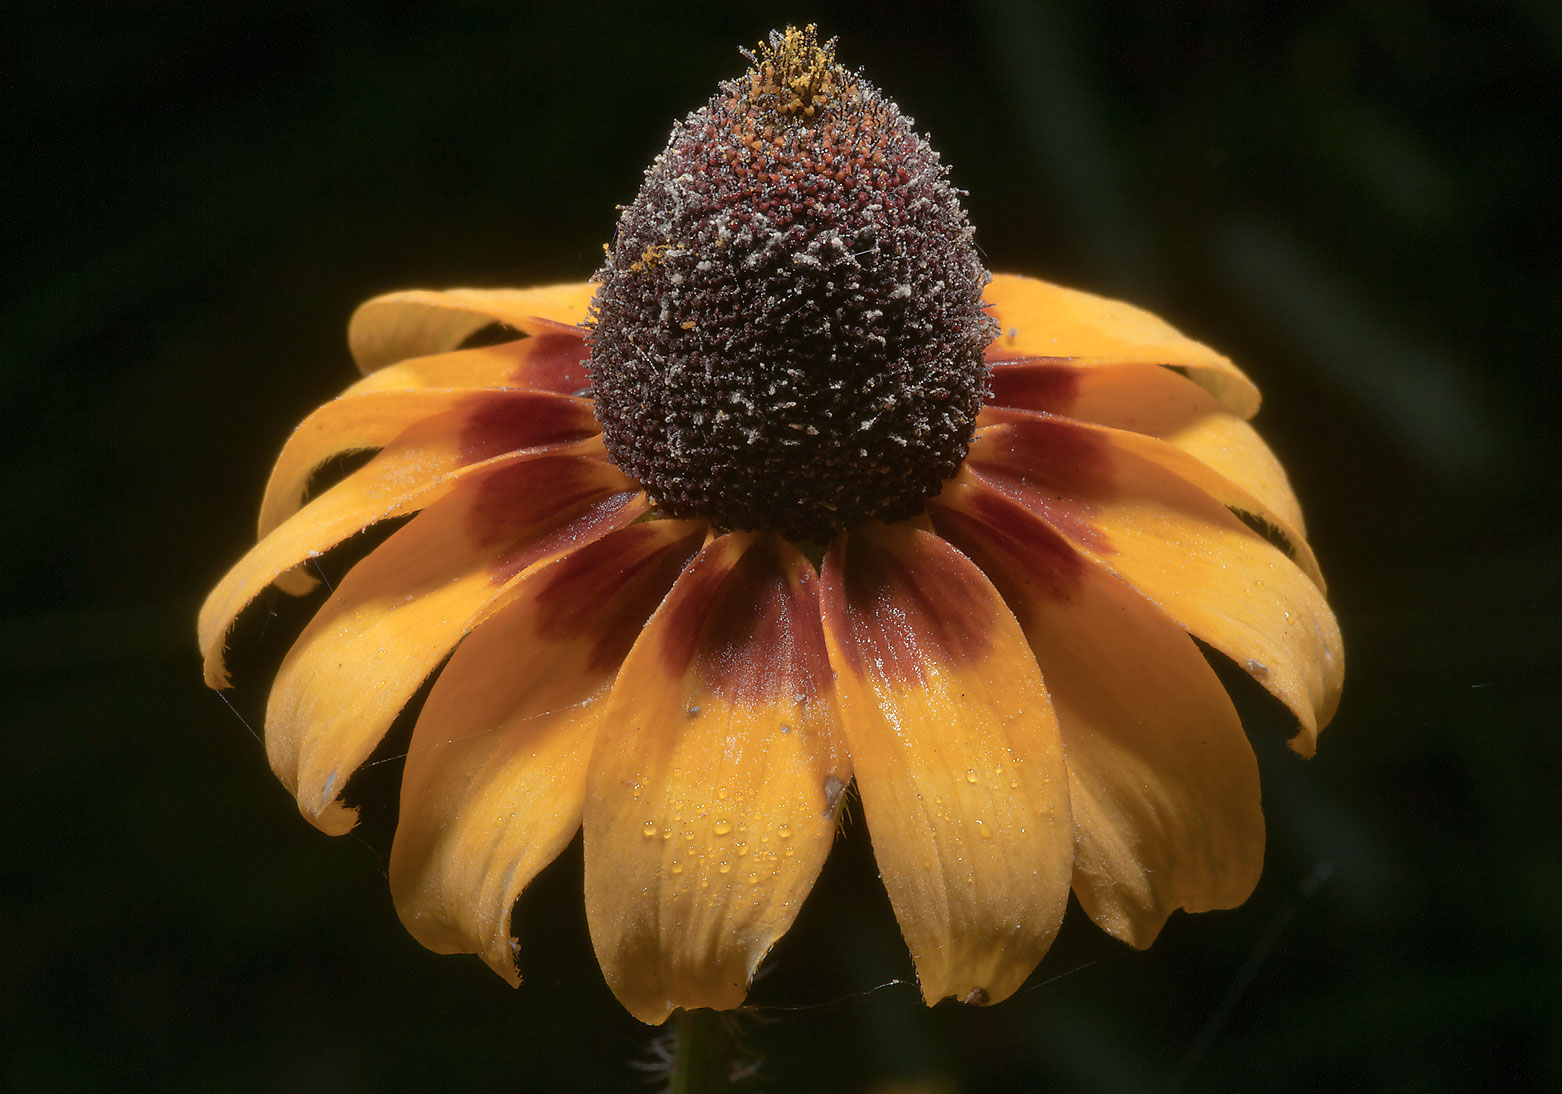 Flower of black-eyed susan in Lick Creek Park. College Station, Texas